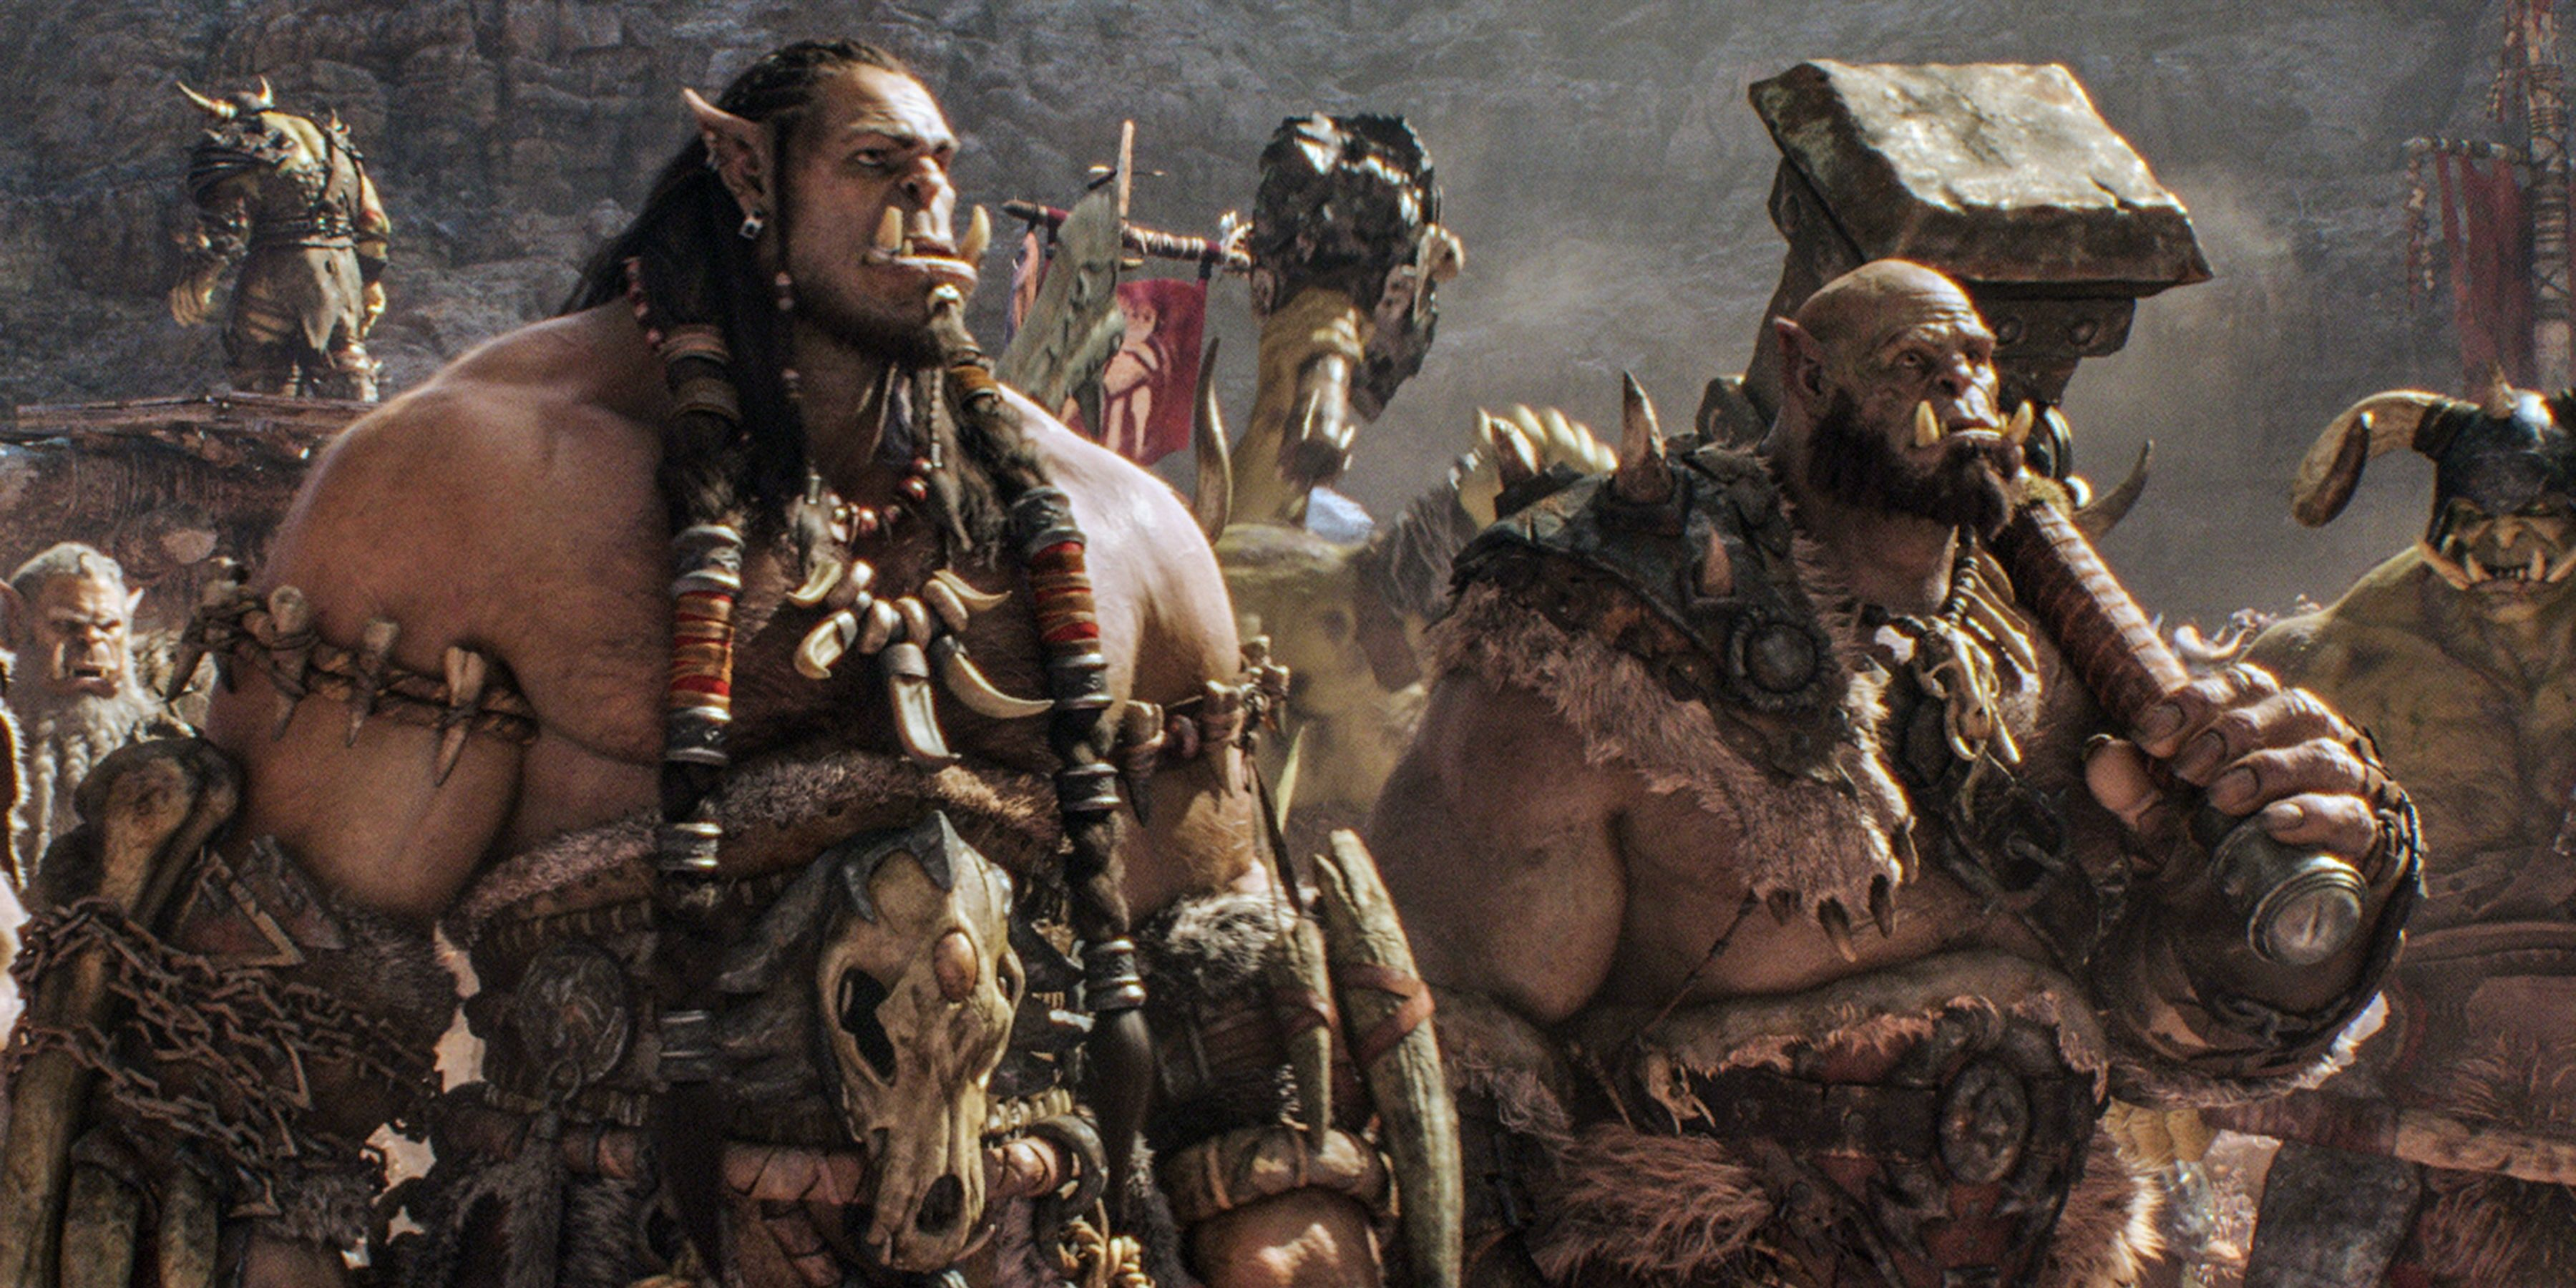 A scene from Warcraft, a 2016 film co-produced by Blizzard Entertainment and based on one of its original IPs. The film grossed $433 million in the global box office.